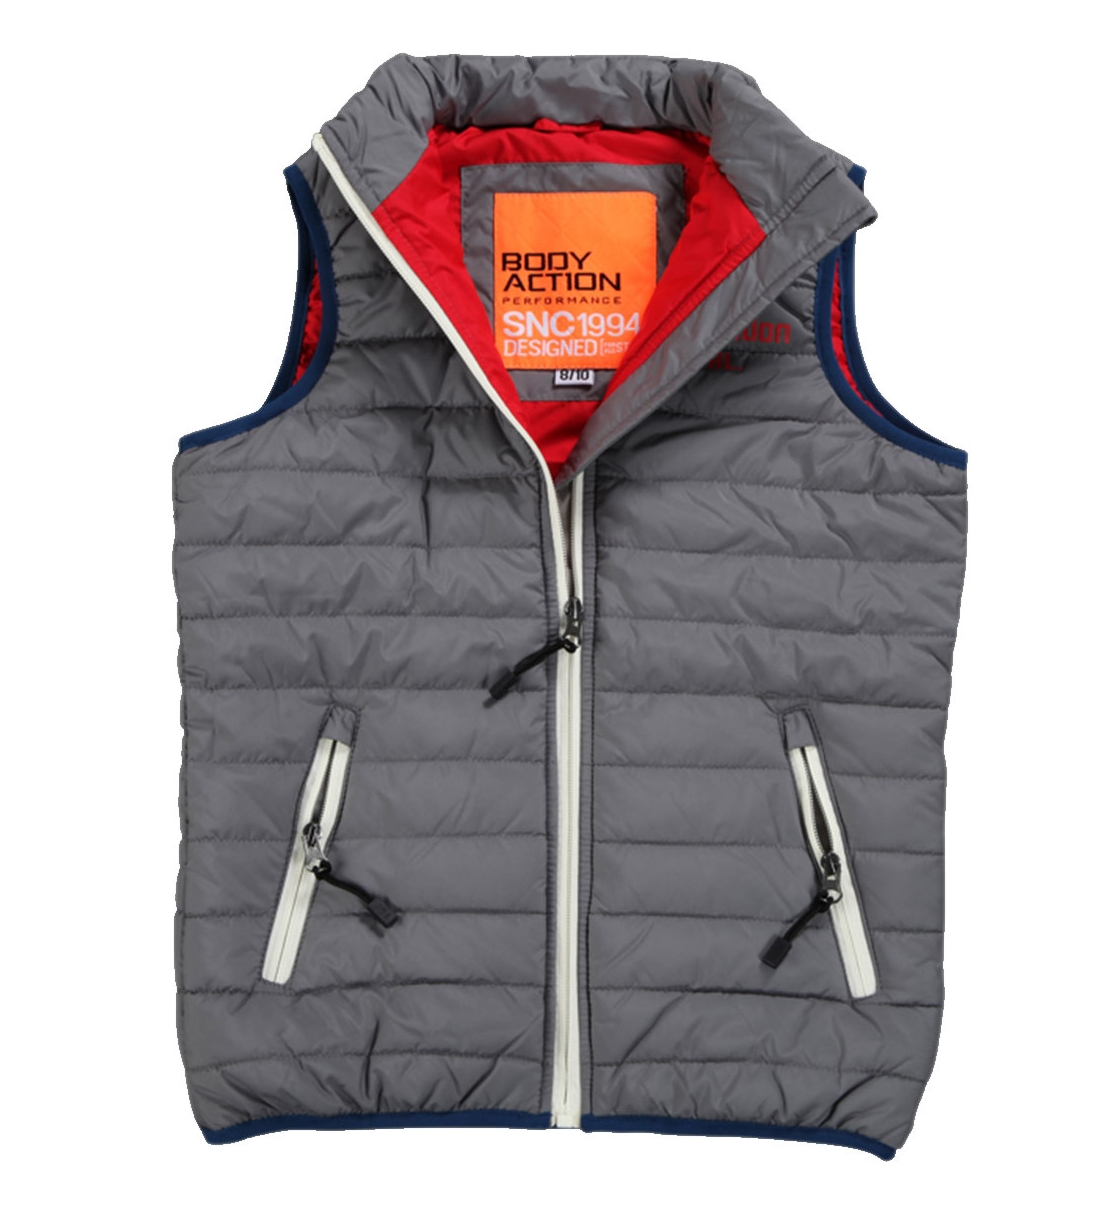 Body Action Παιδικό Αθλητικό Μπουφάν Αμάνικο Boys Ultralight Quilted Vest 074602